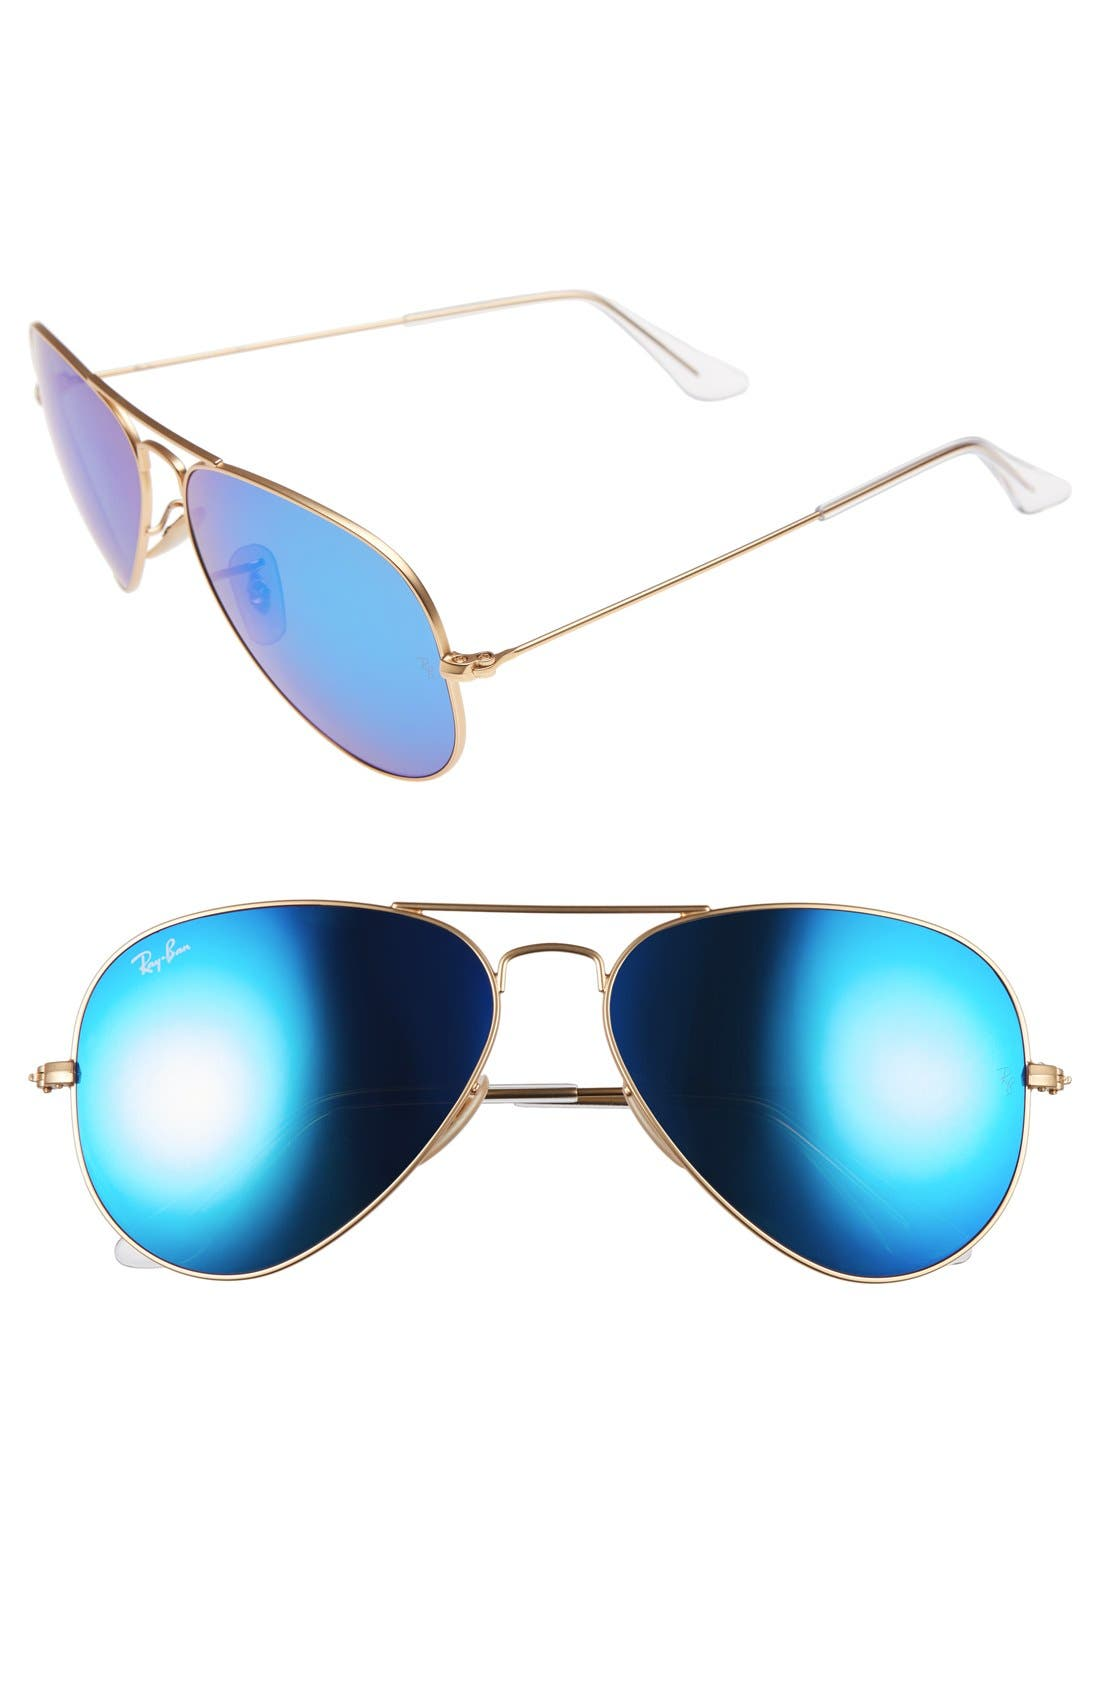 Original Aviator 58mm Sunglasses,                             Alternate thumbnail 3, color,                             MATTE GOLD/ BLUE MIRROR